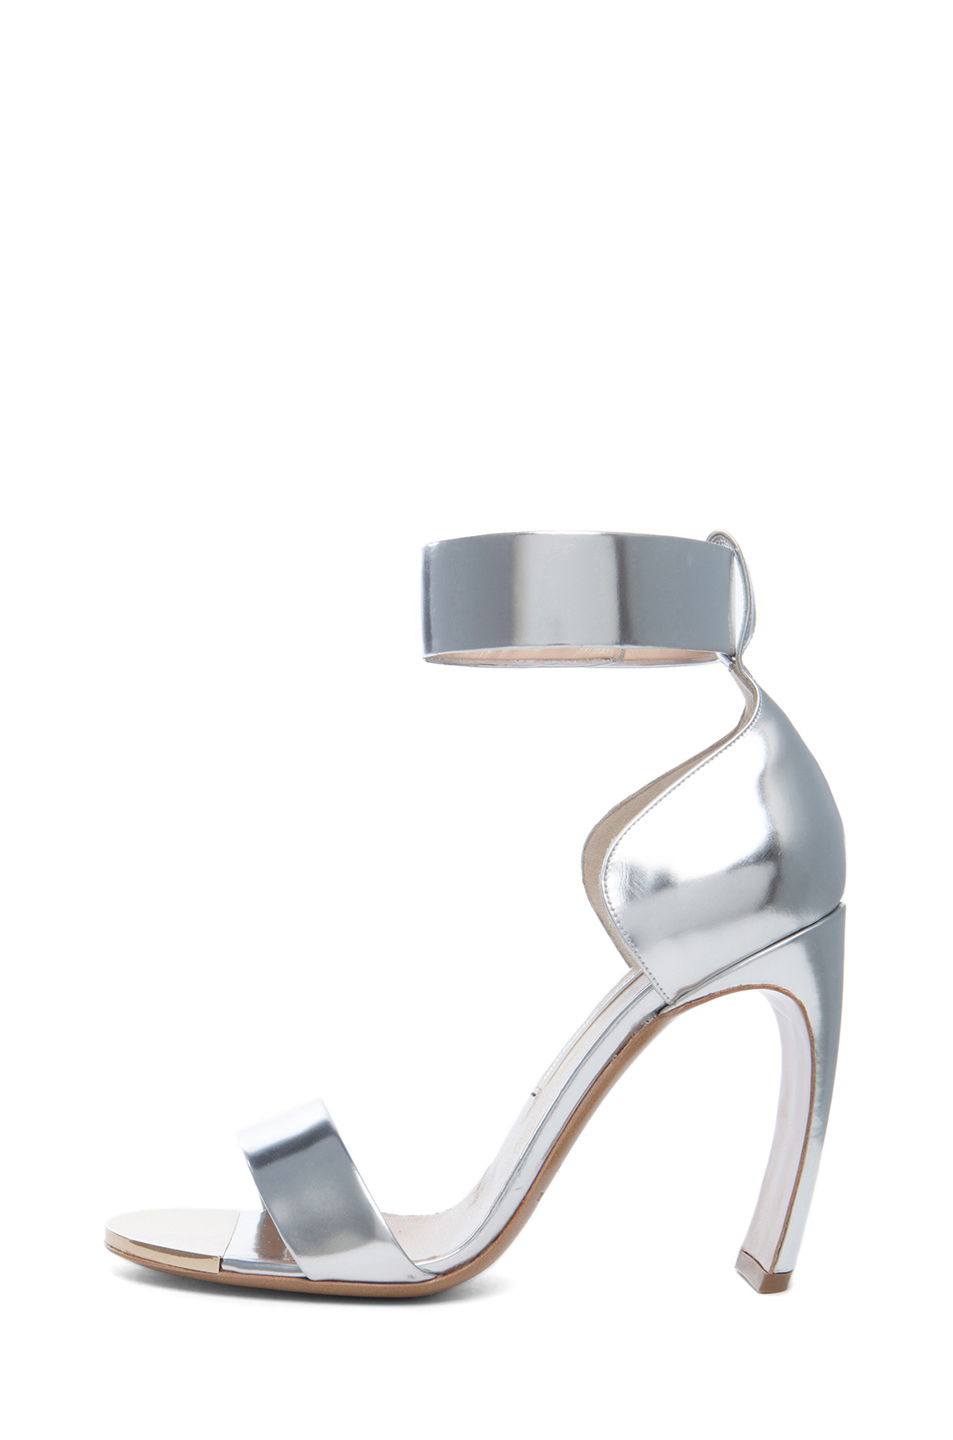 Curved heel leather sandals in silver